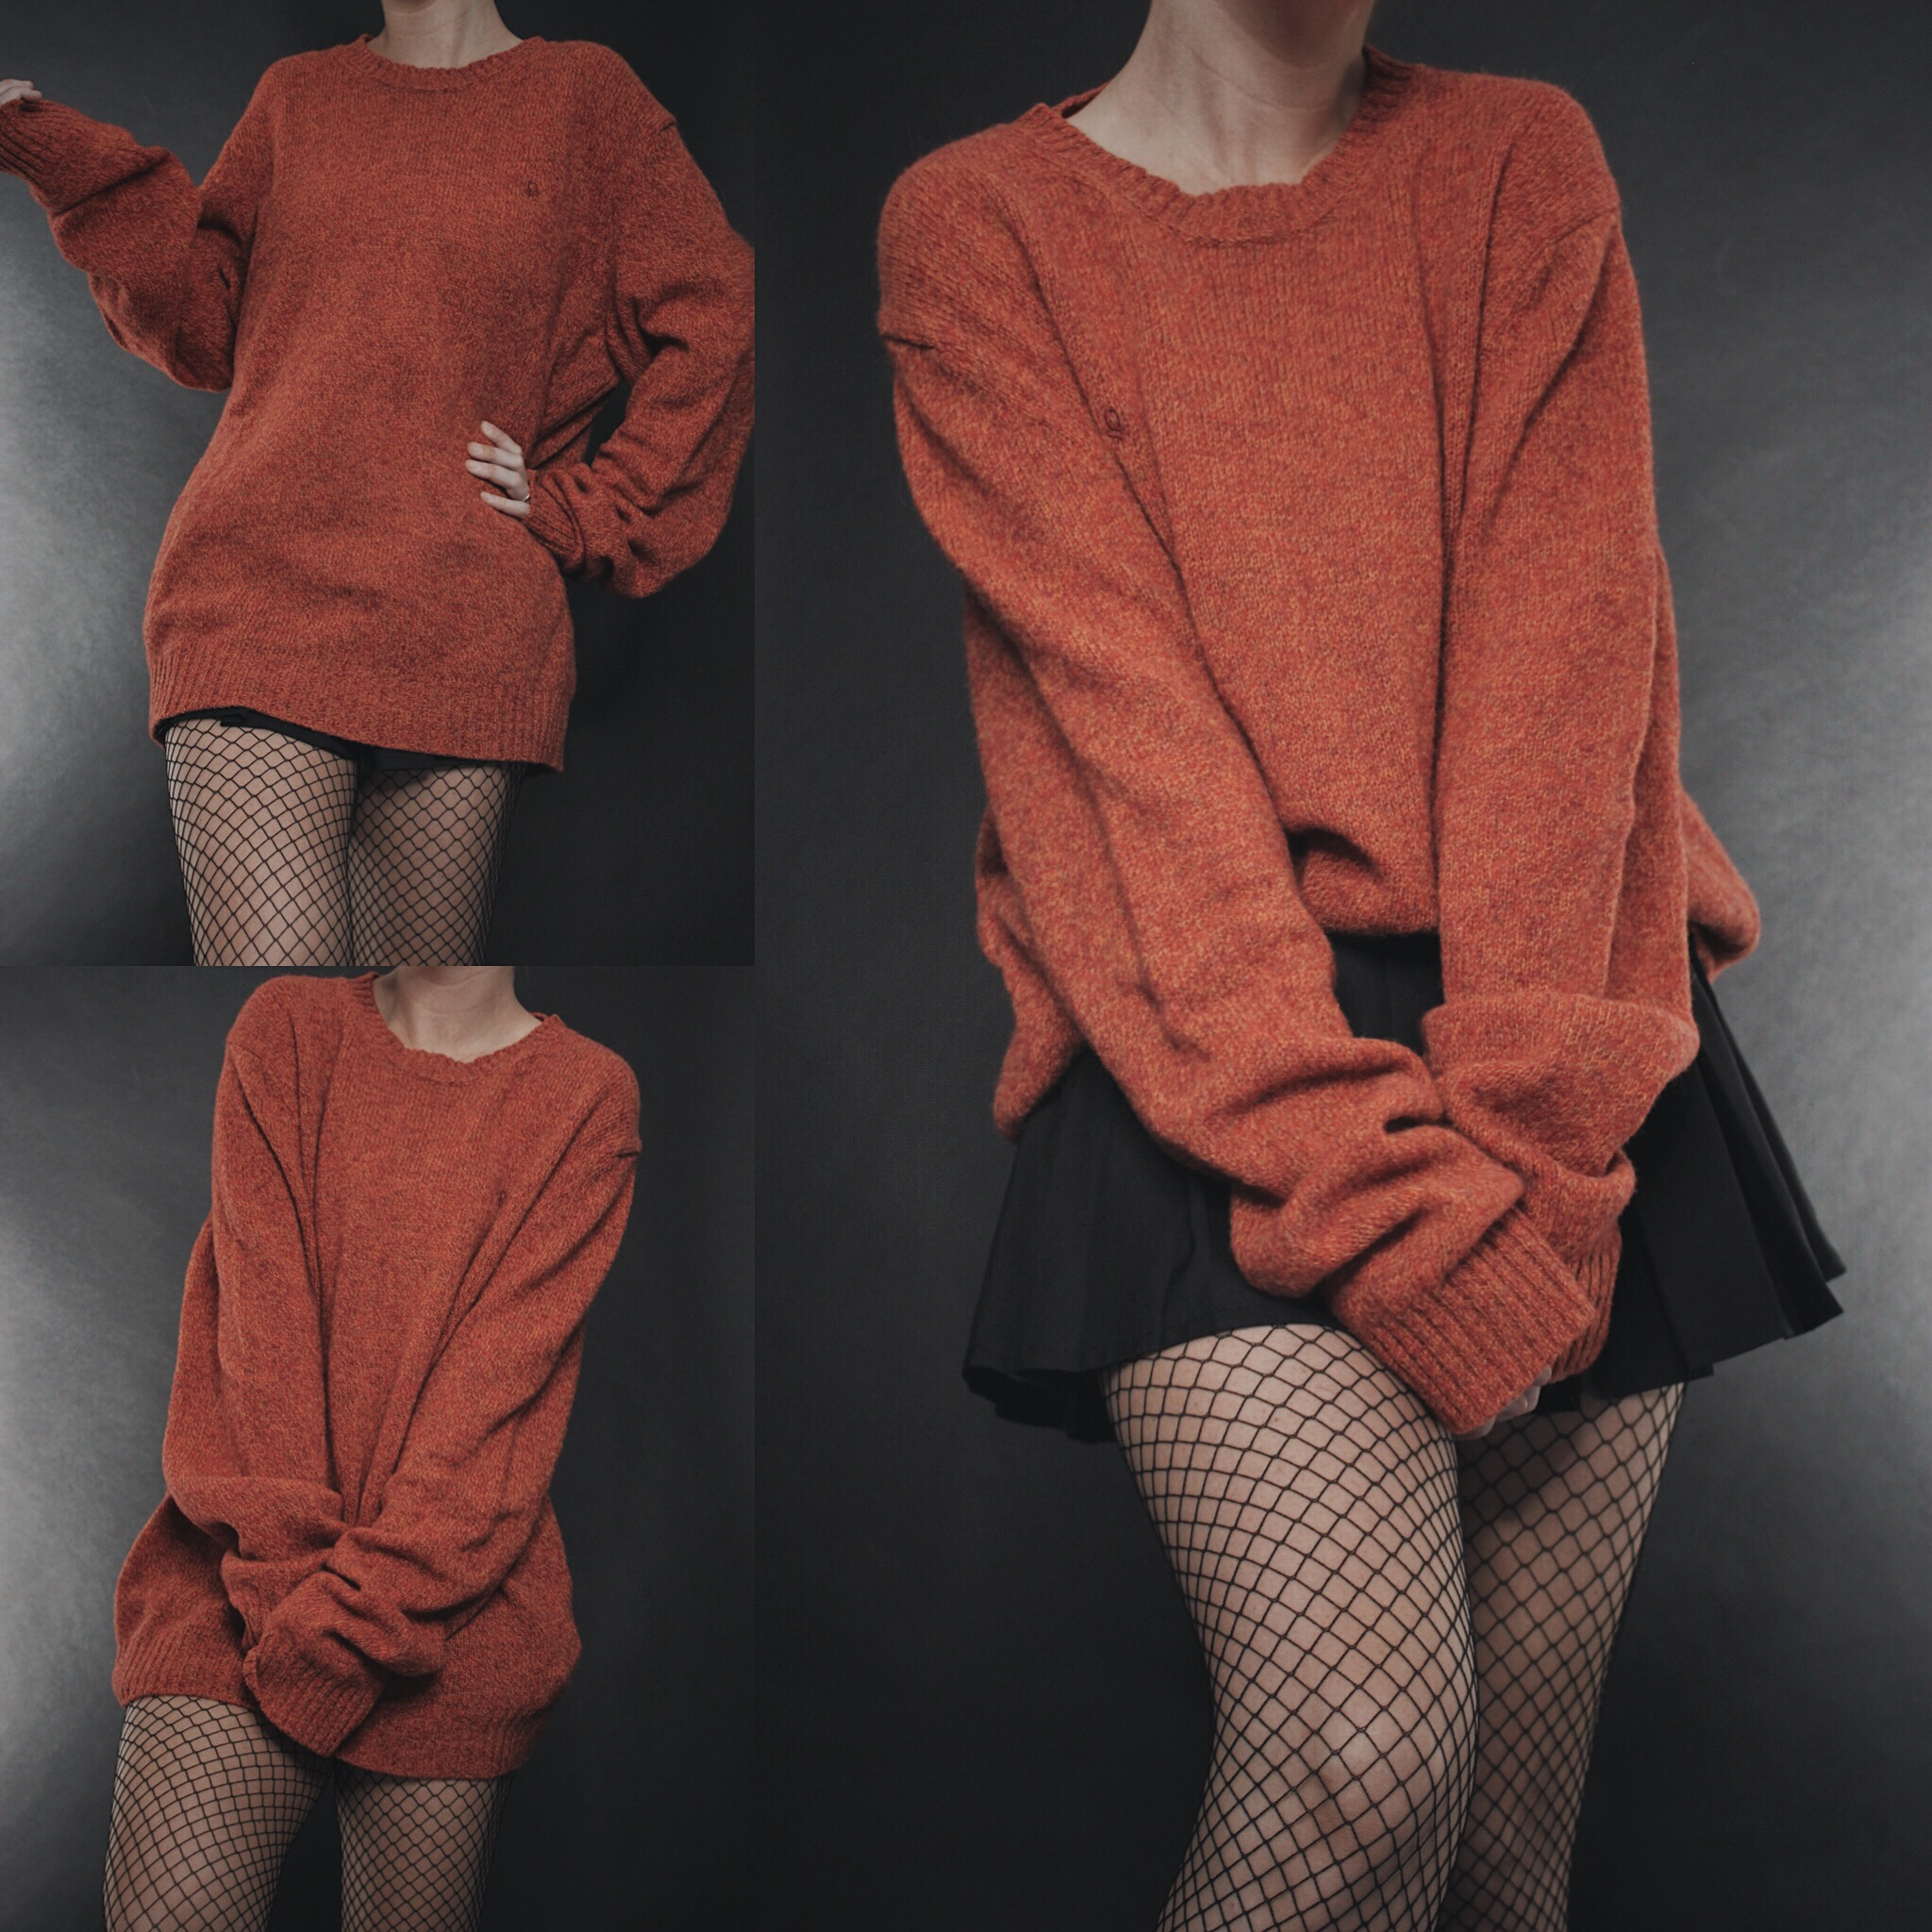 1329fb5ab13 RESERVED FOR RACHEL - Vintage 90s United Colors of Benetton Pumpkin Wool  Sweater from Last Rites